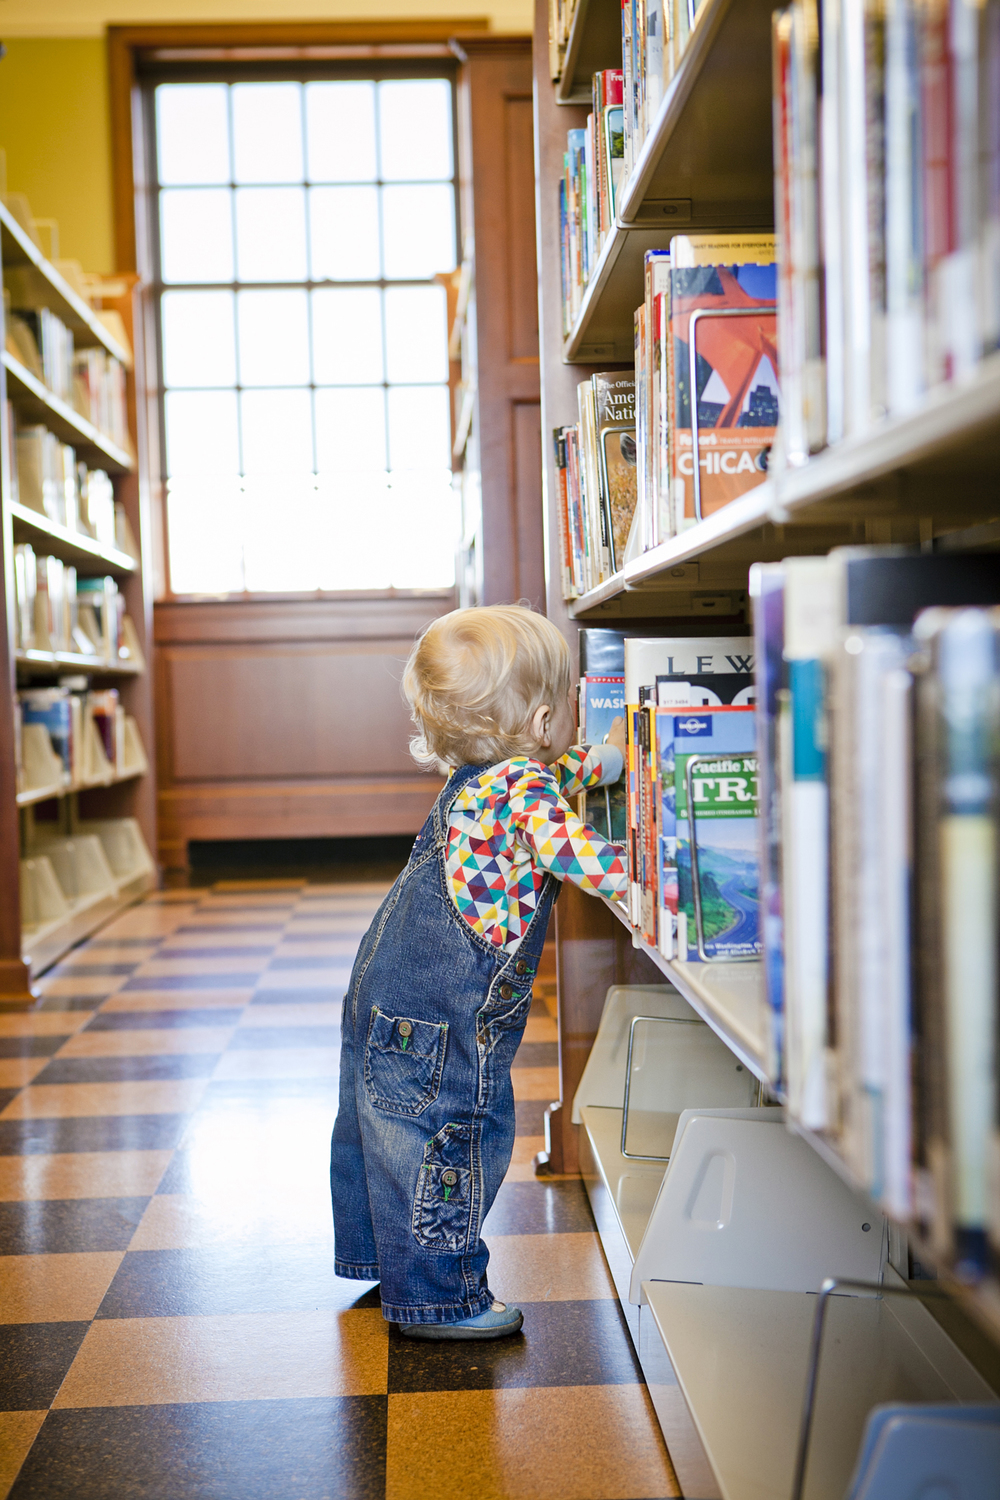 lifestyle-editorial-children-washington-dc-malek-naz-photography-contempo-kids-library.jpg